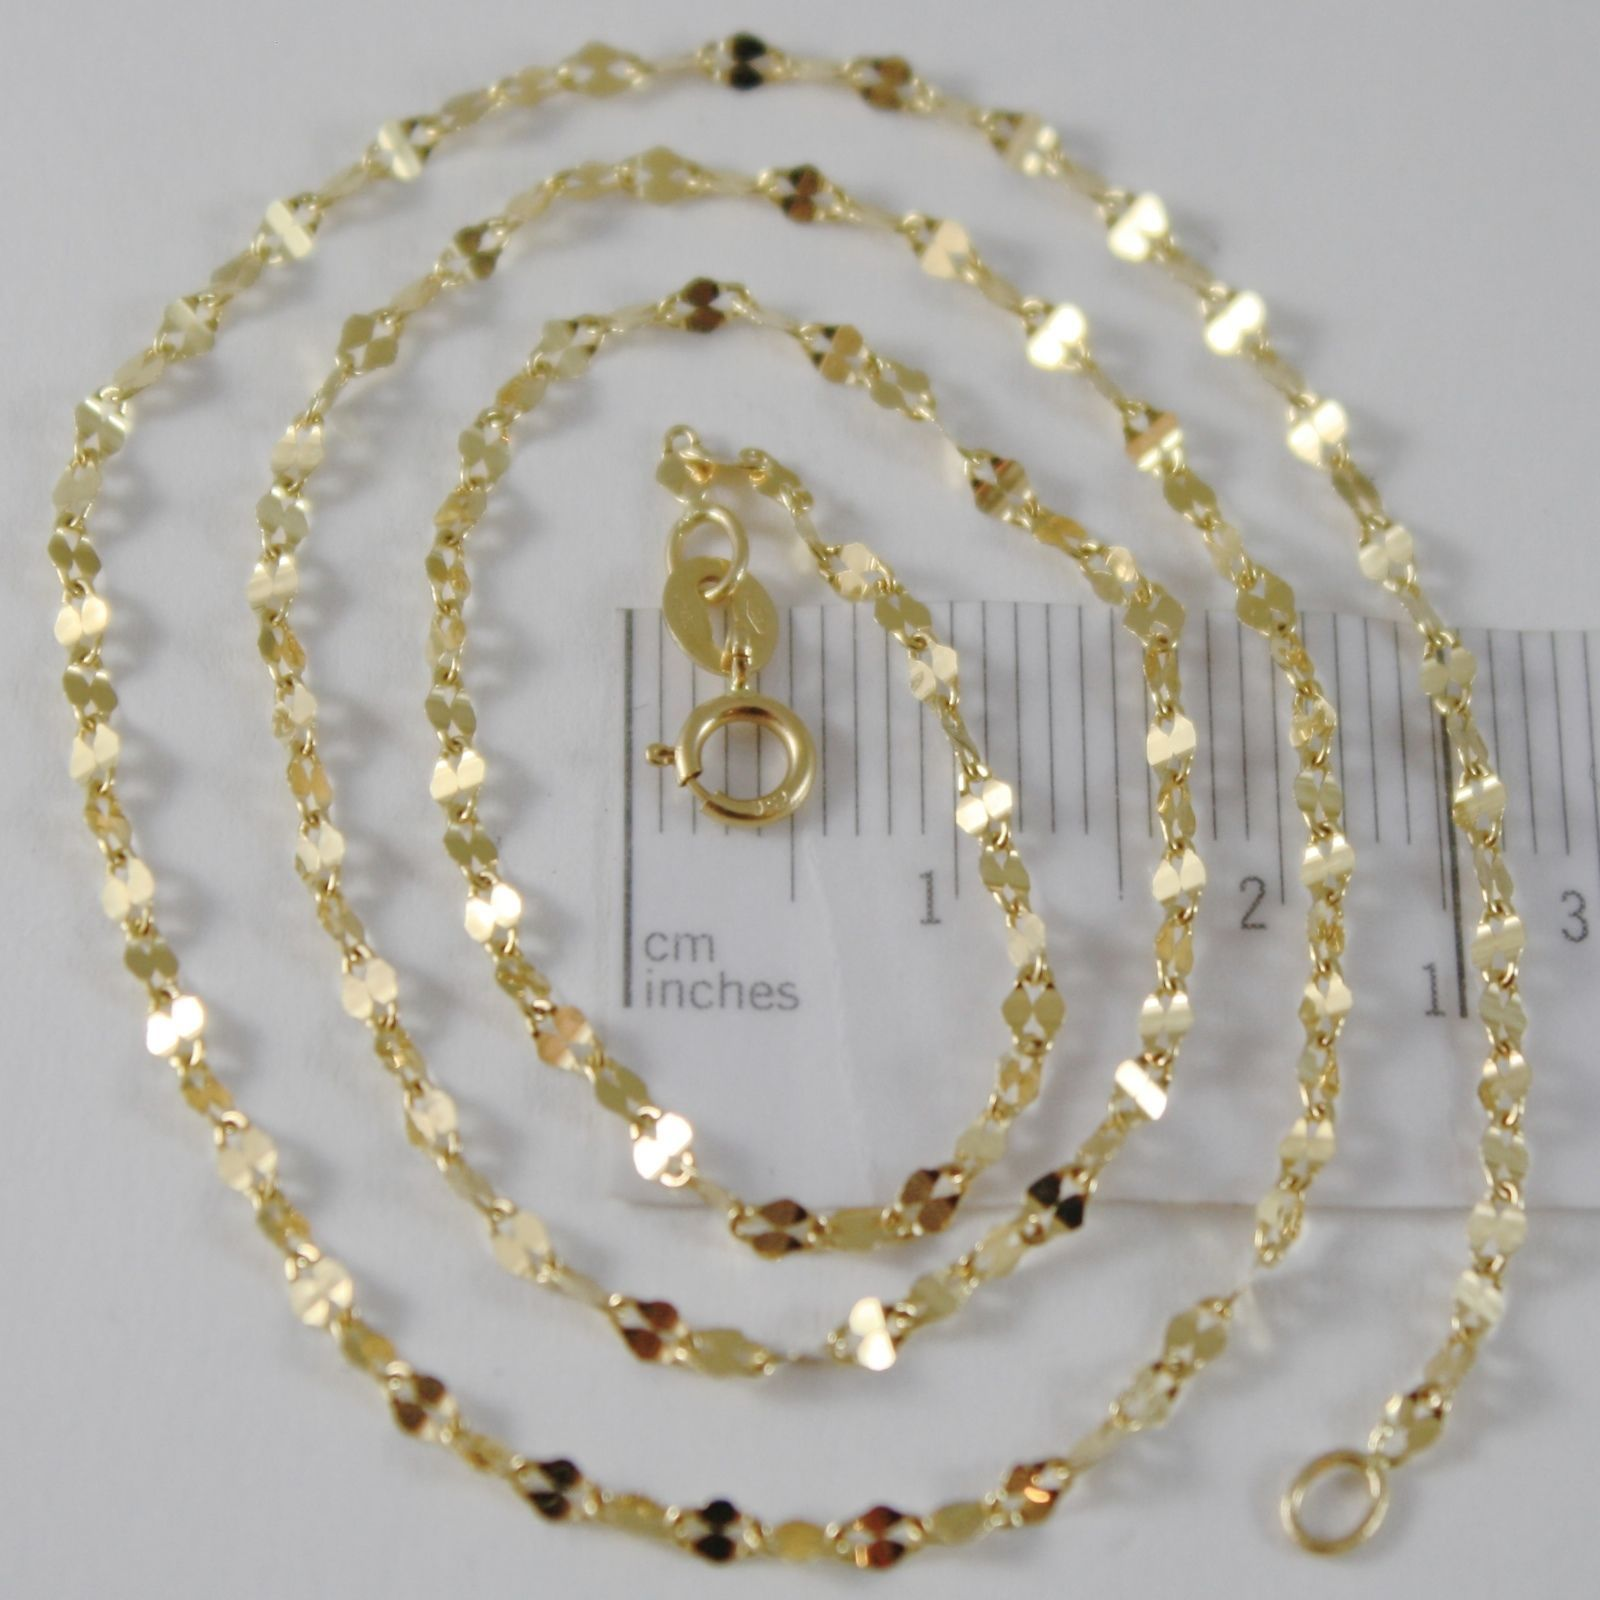 SOLID 18K YELLOW GOLD FLAT BRIGHT KITE CHAIN 20 INCHES, 2.2 MM MADE IN ITALY